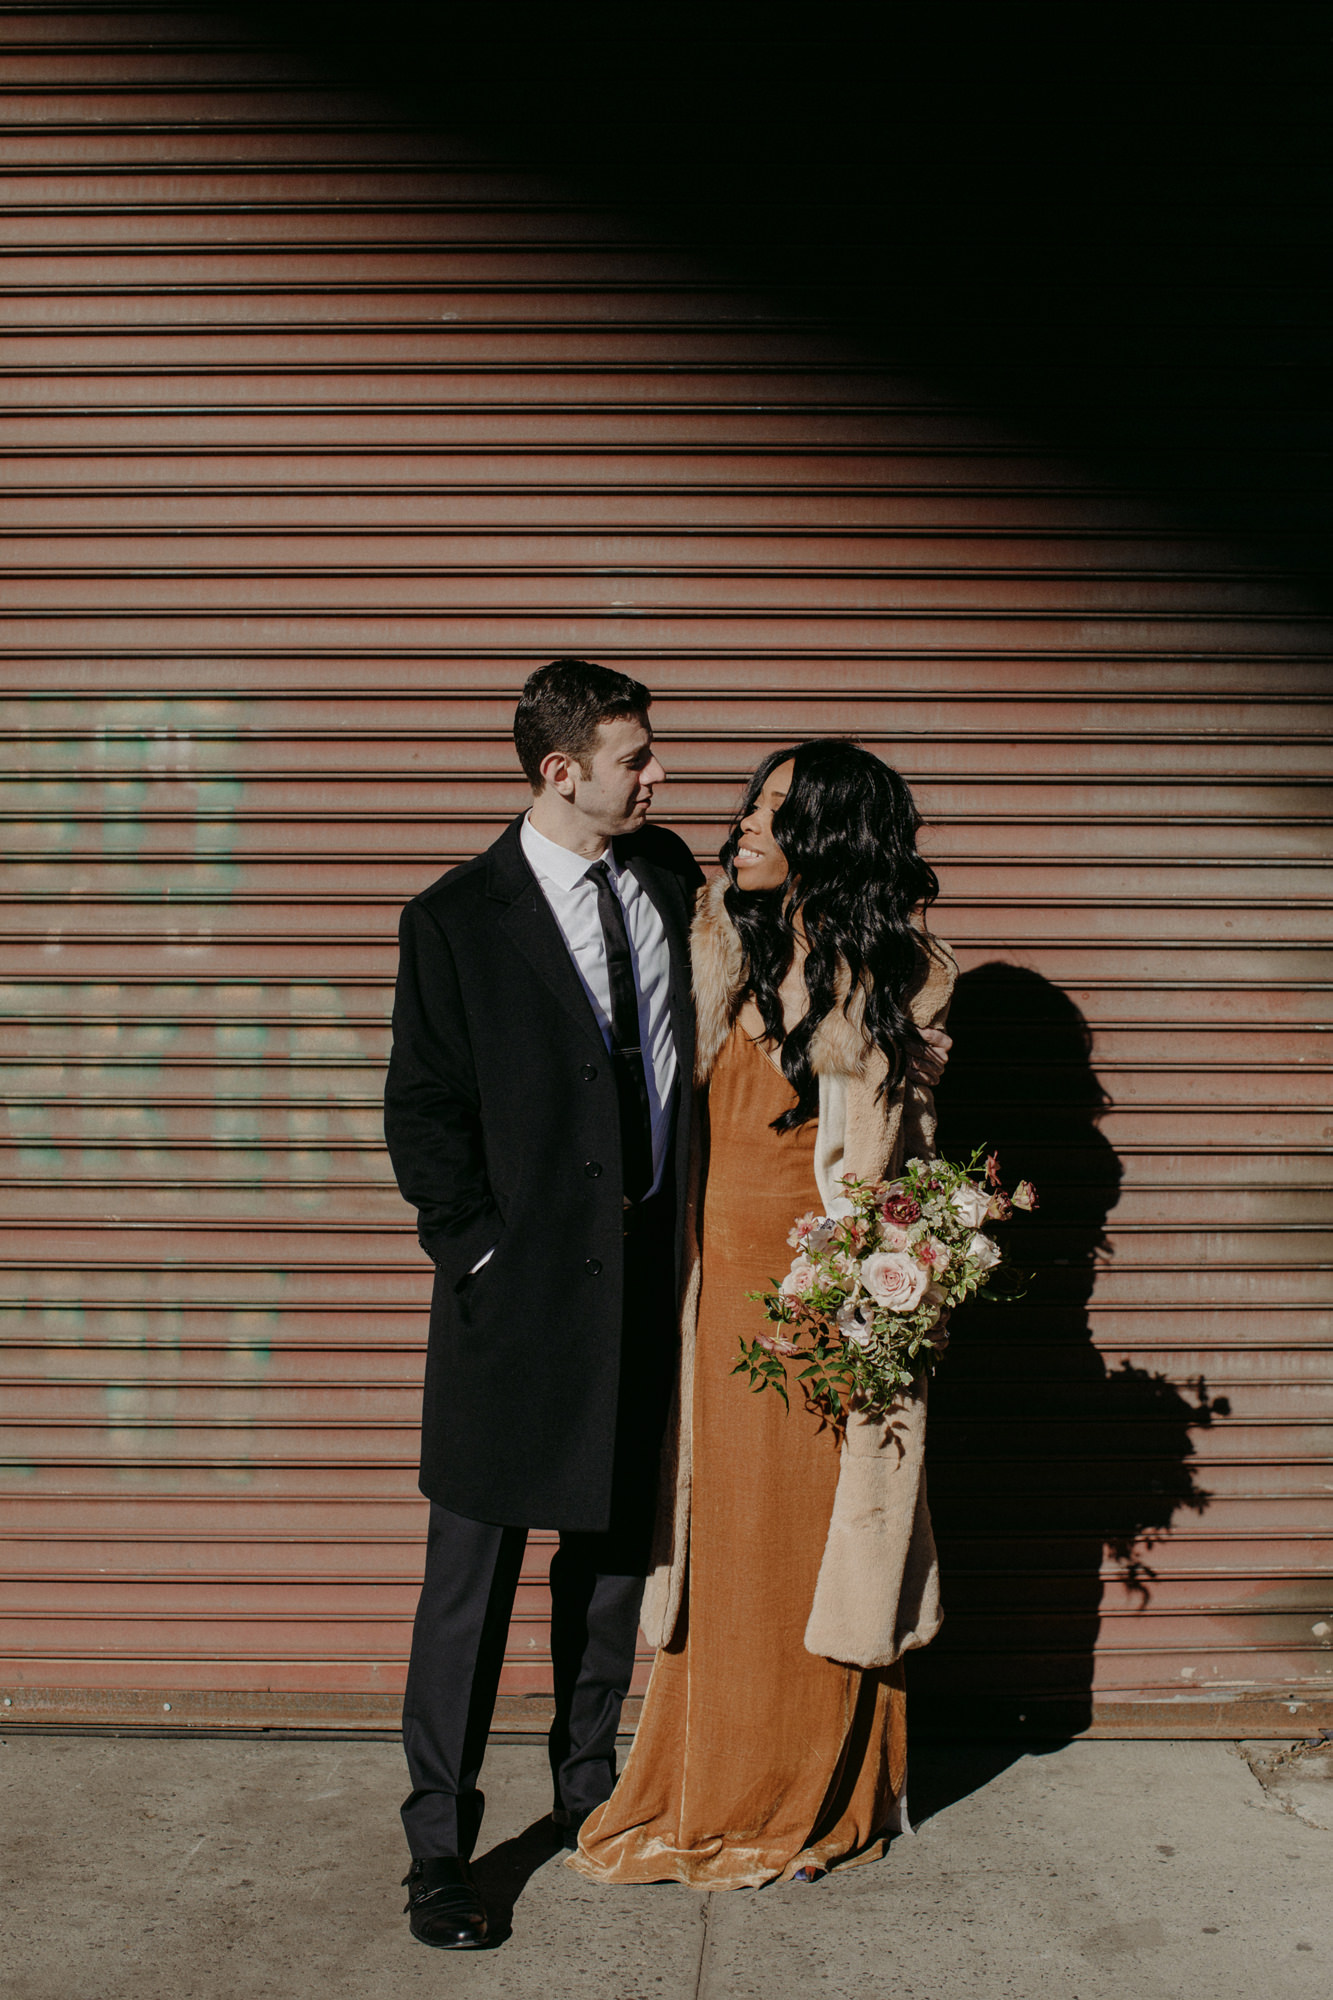 BROOKLYN_ELOPEMENT_SAMMBLAKE_NDE_056.jpg